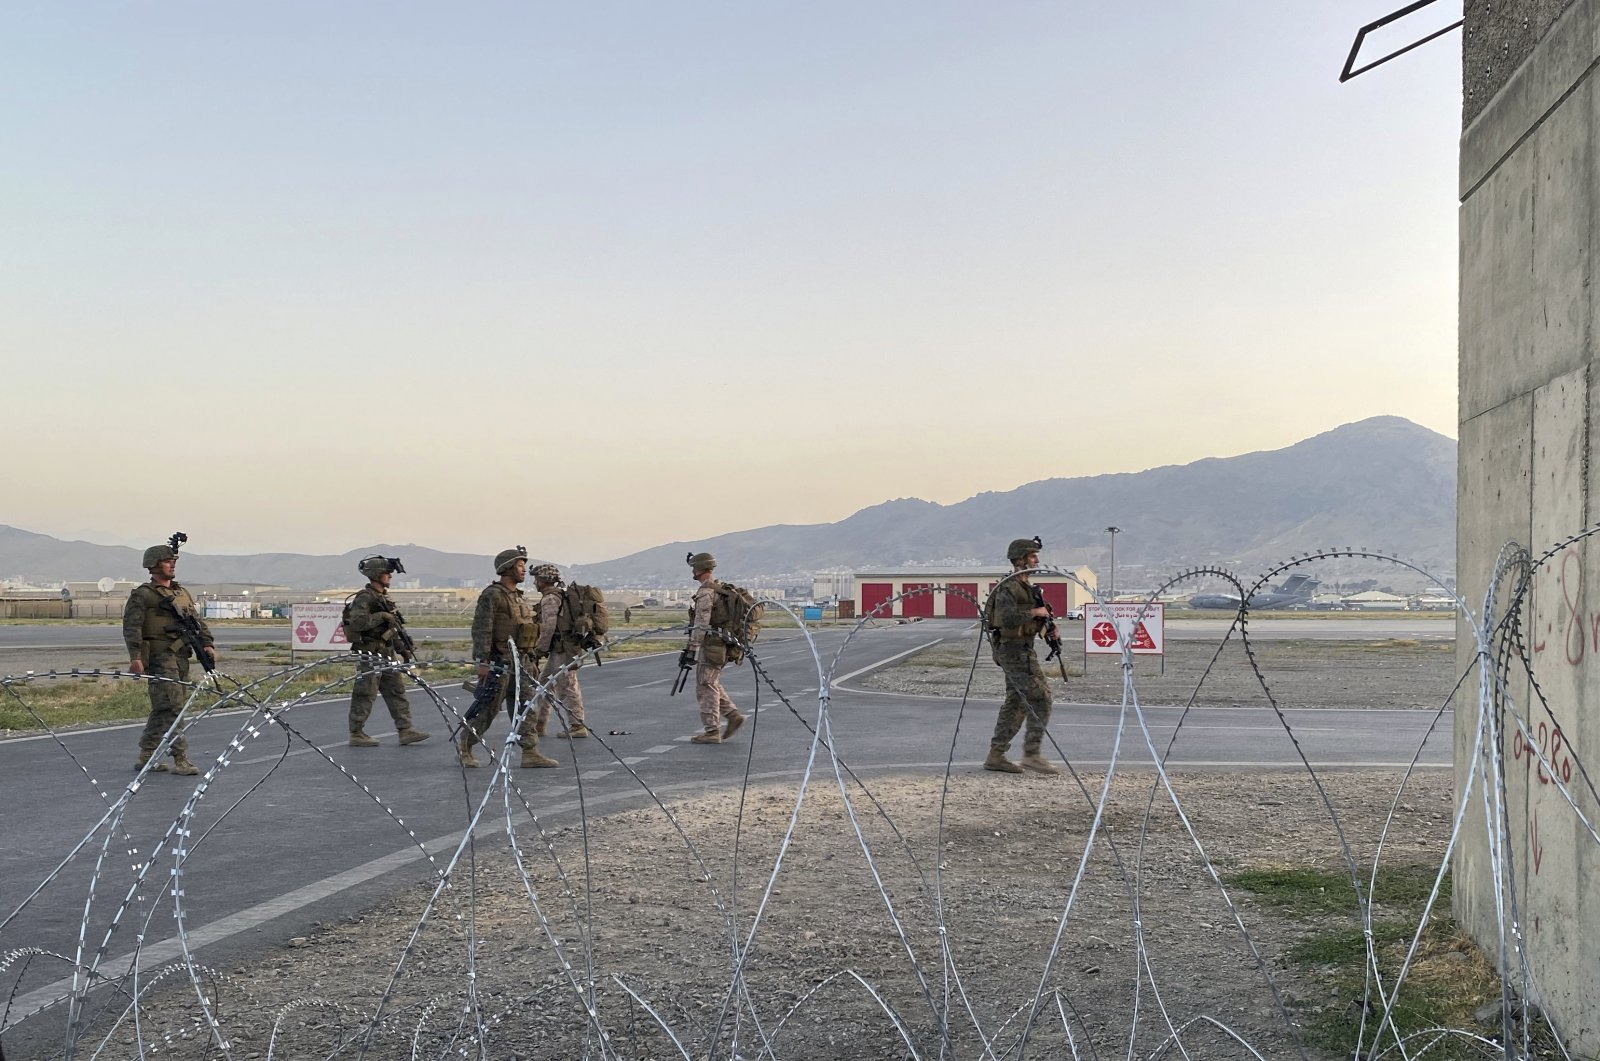 U.S. soldiers stand guard along a perimeter at the international airport in Kabul, Afghanistan, Aug. 16, 2021. (AP Photo)